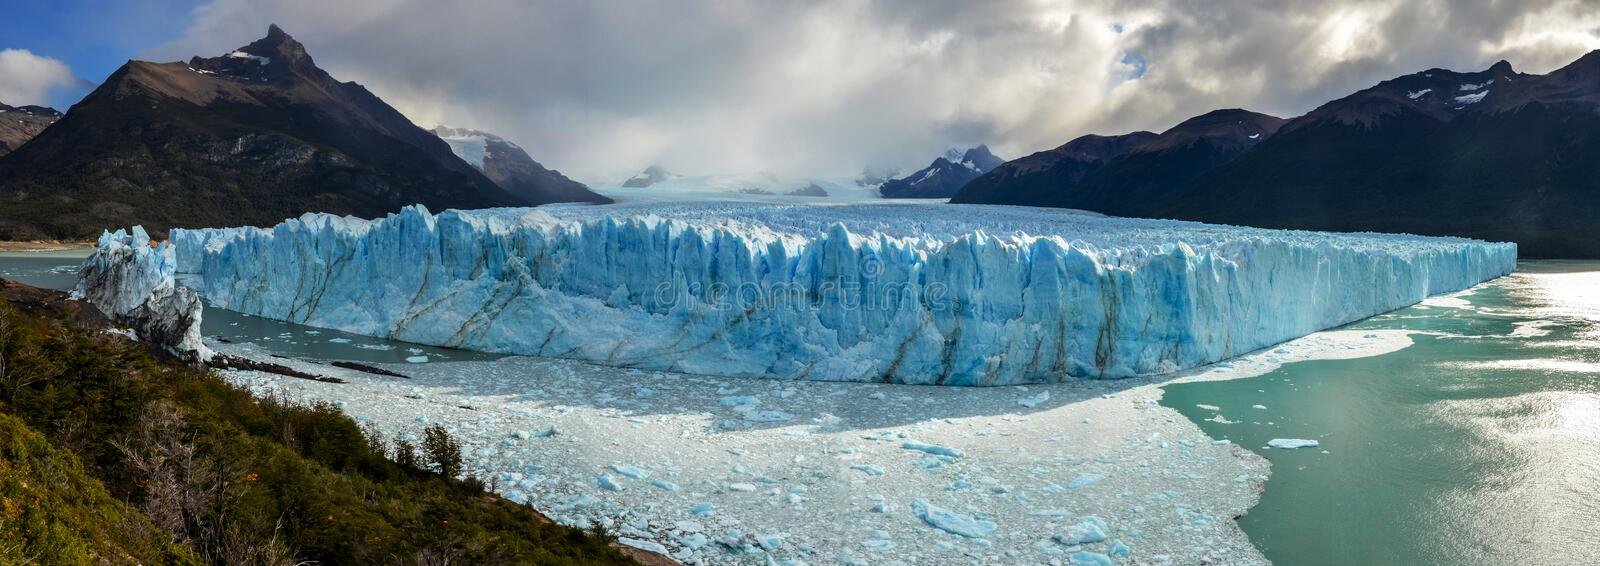 Perito Moreno Glacier in Los Glaciares National Park in El Calafate, Argentina, South America stock photos